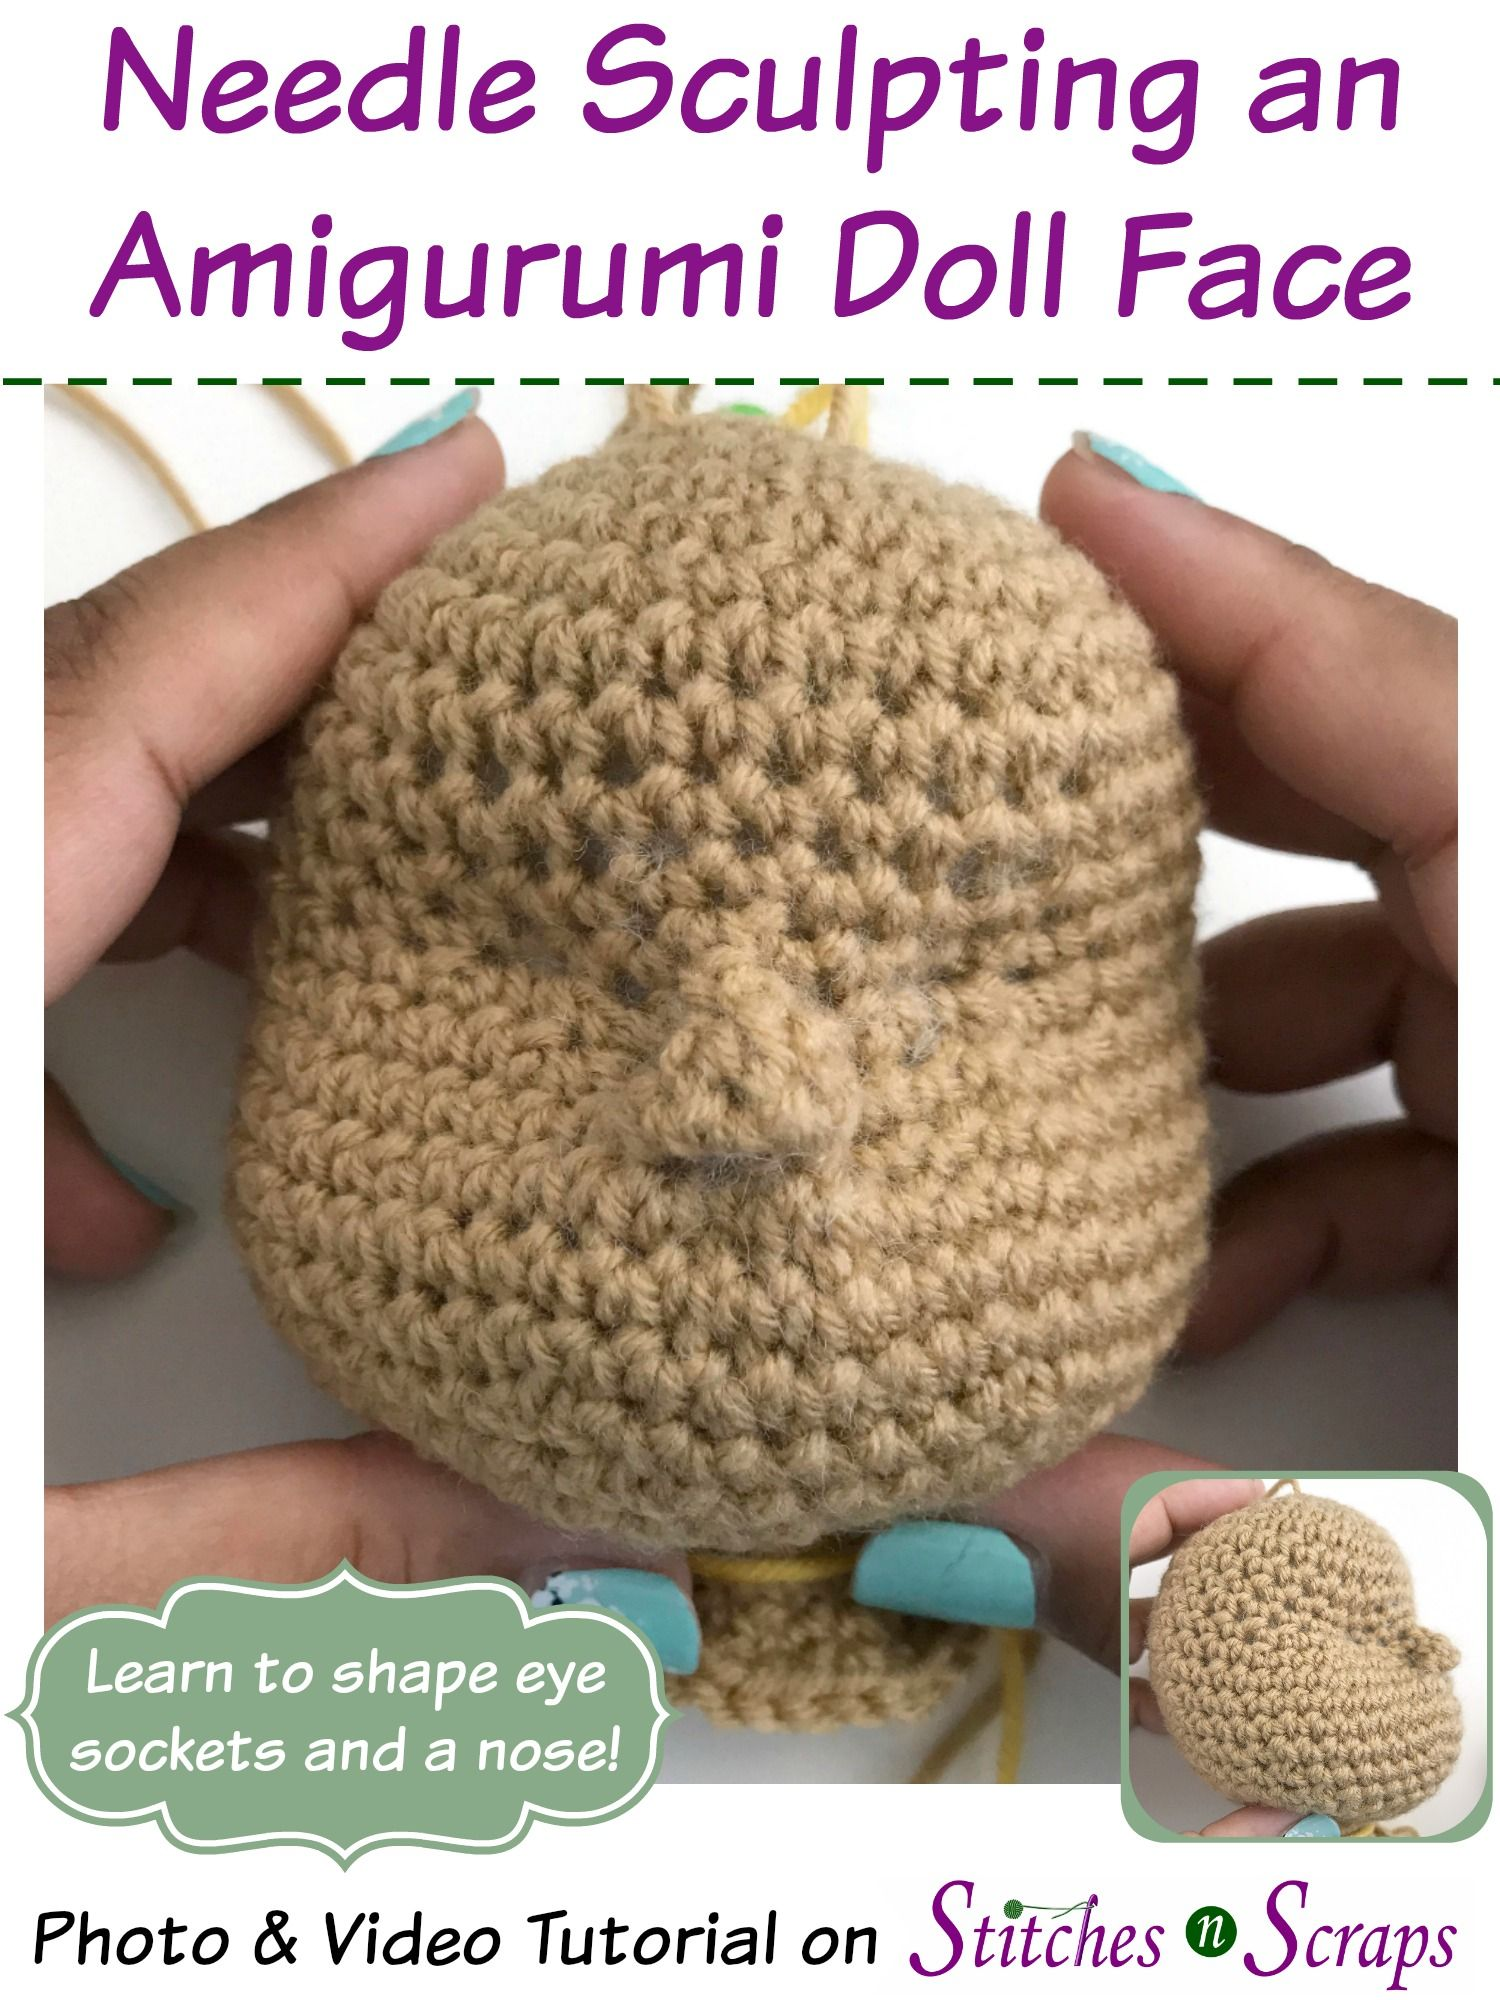 Tutorial - Needle Sculpting an Amigurumi Doll Face #amigurumidoll